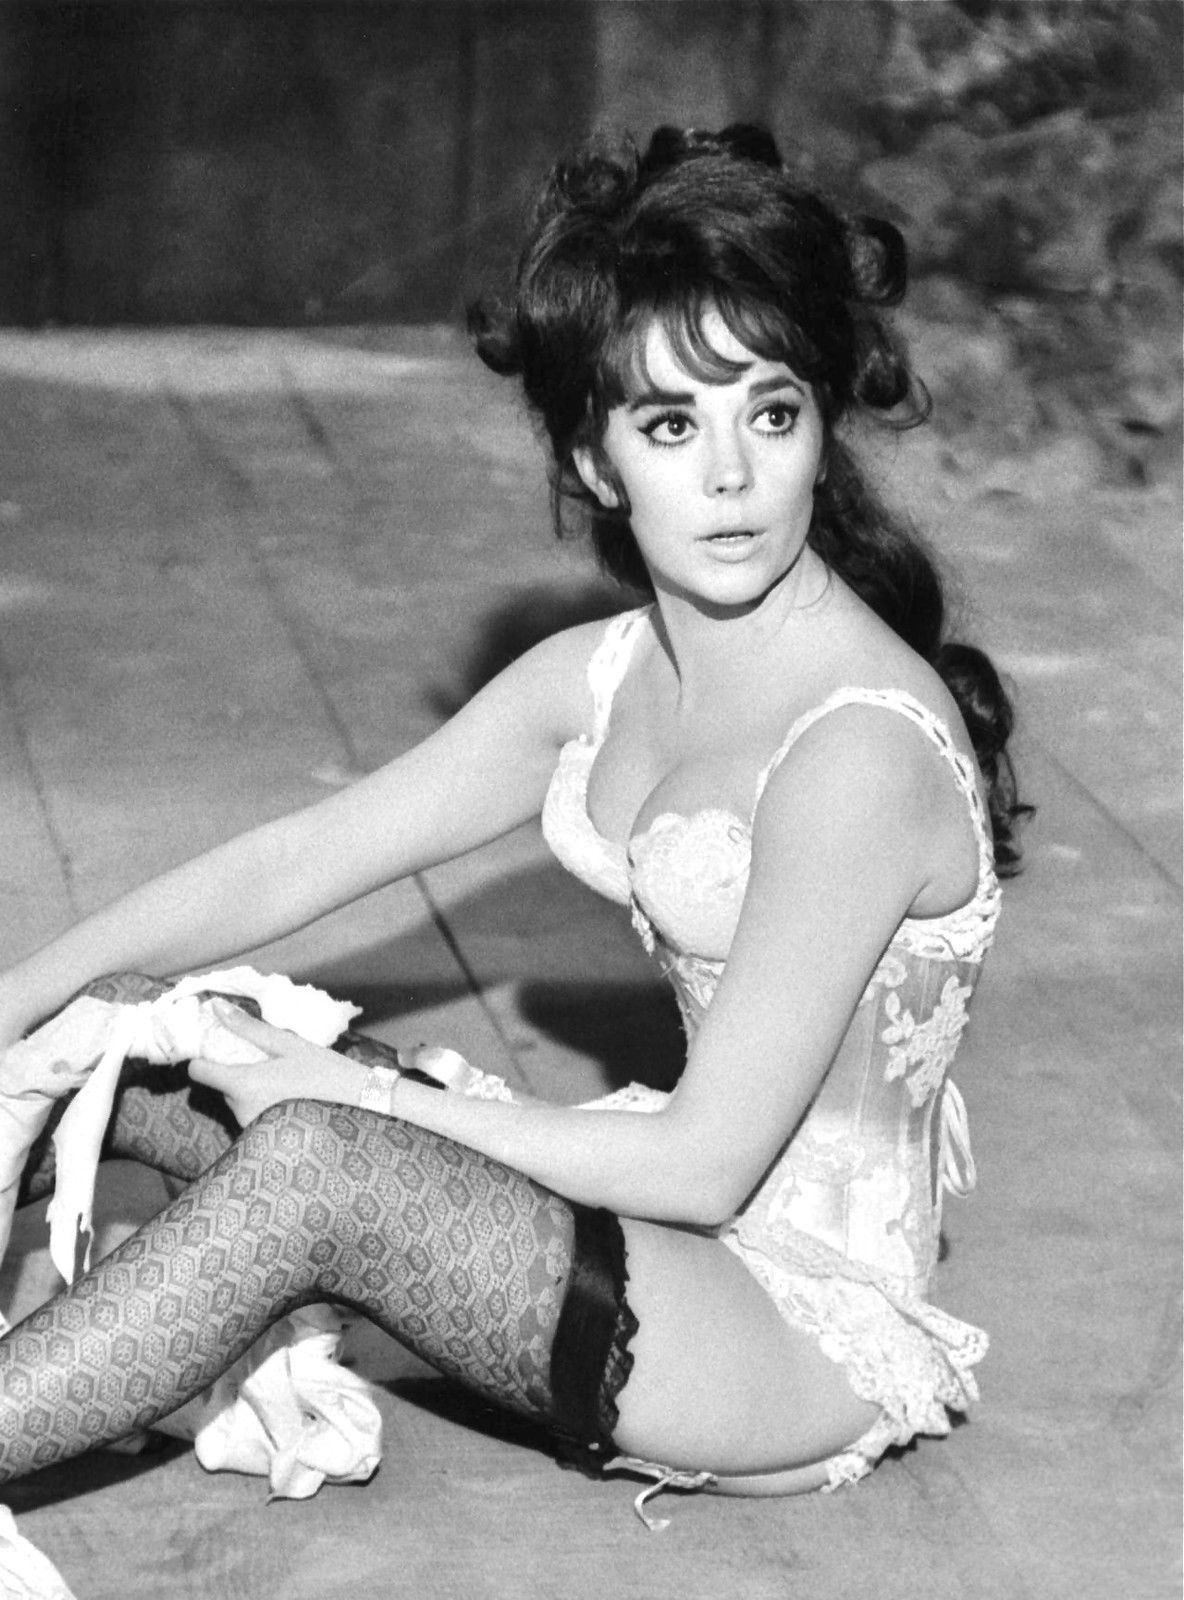 Pin by natalie on prom old hollywood pinterest - Natalie Wood In The Great Race 1965